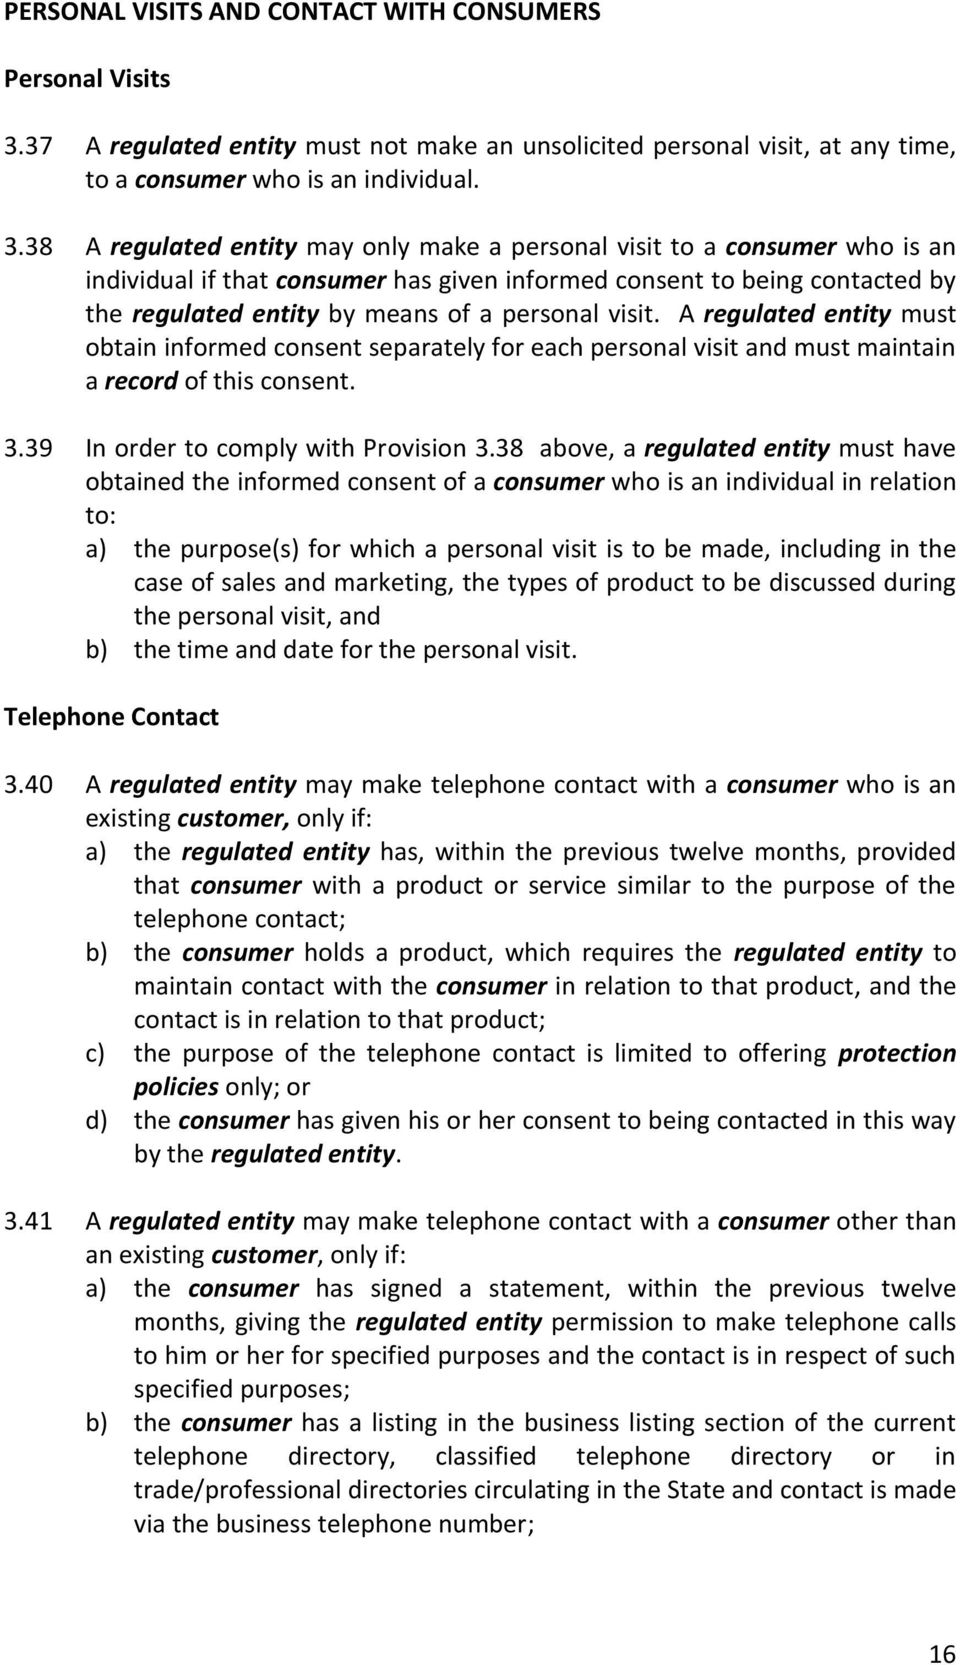 38 A regulated entity may only make a personal visit to a consumer who is an individual if that consumer has given informed consent to being contacted by the regulated entity by means of a personal